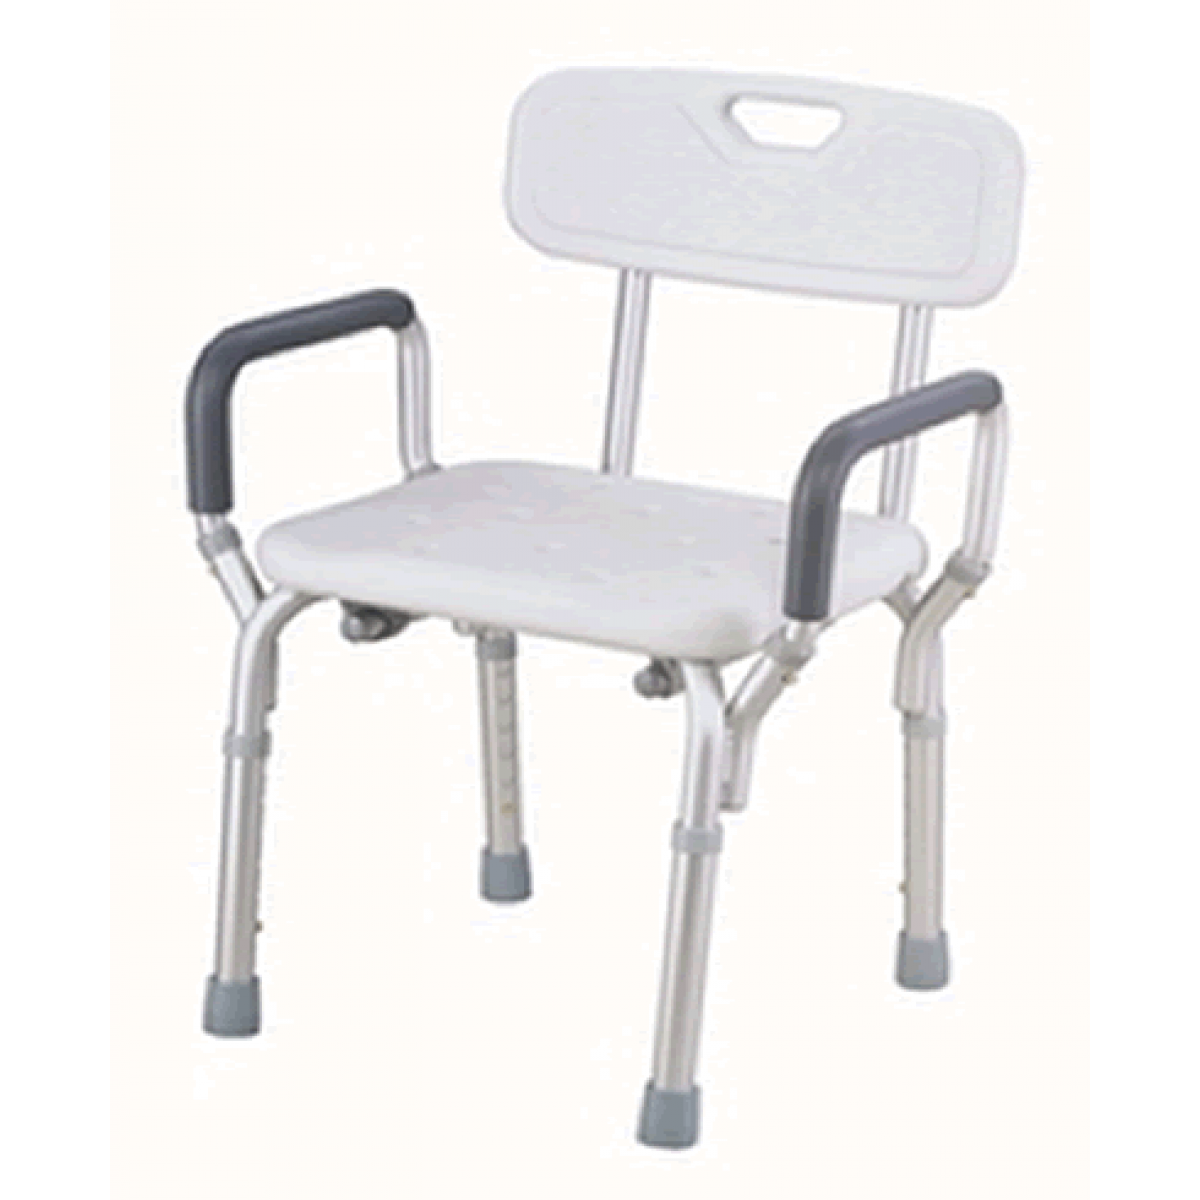 Merits Shower Chair Bath Bench With Arms On Sale With Unbeatable Prices